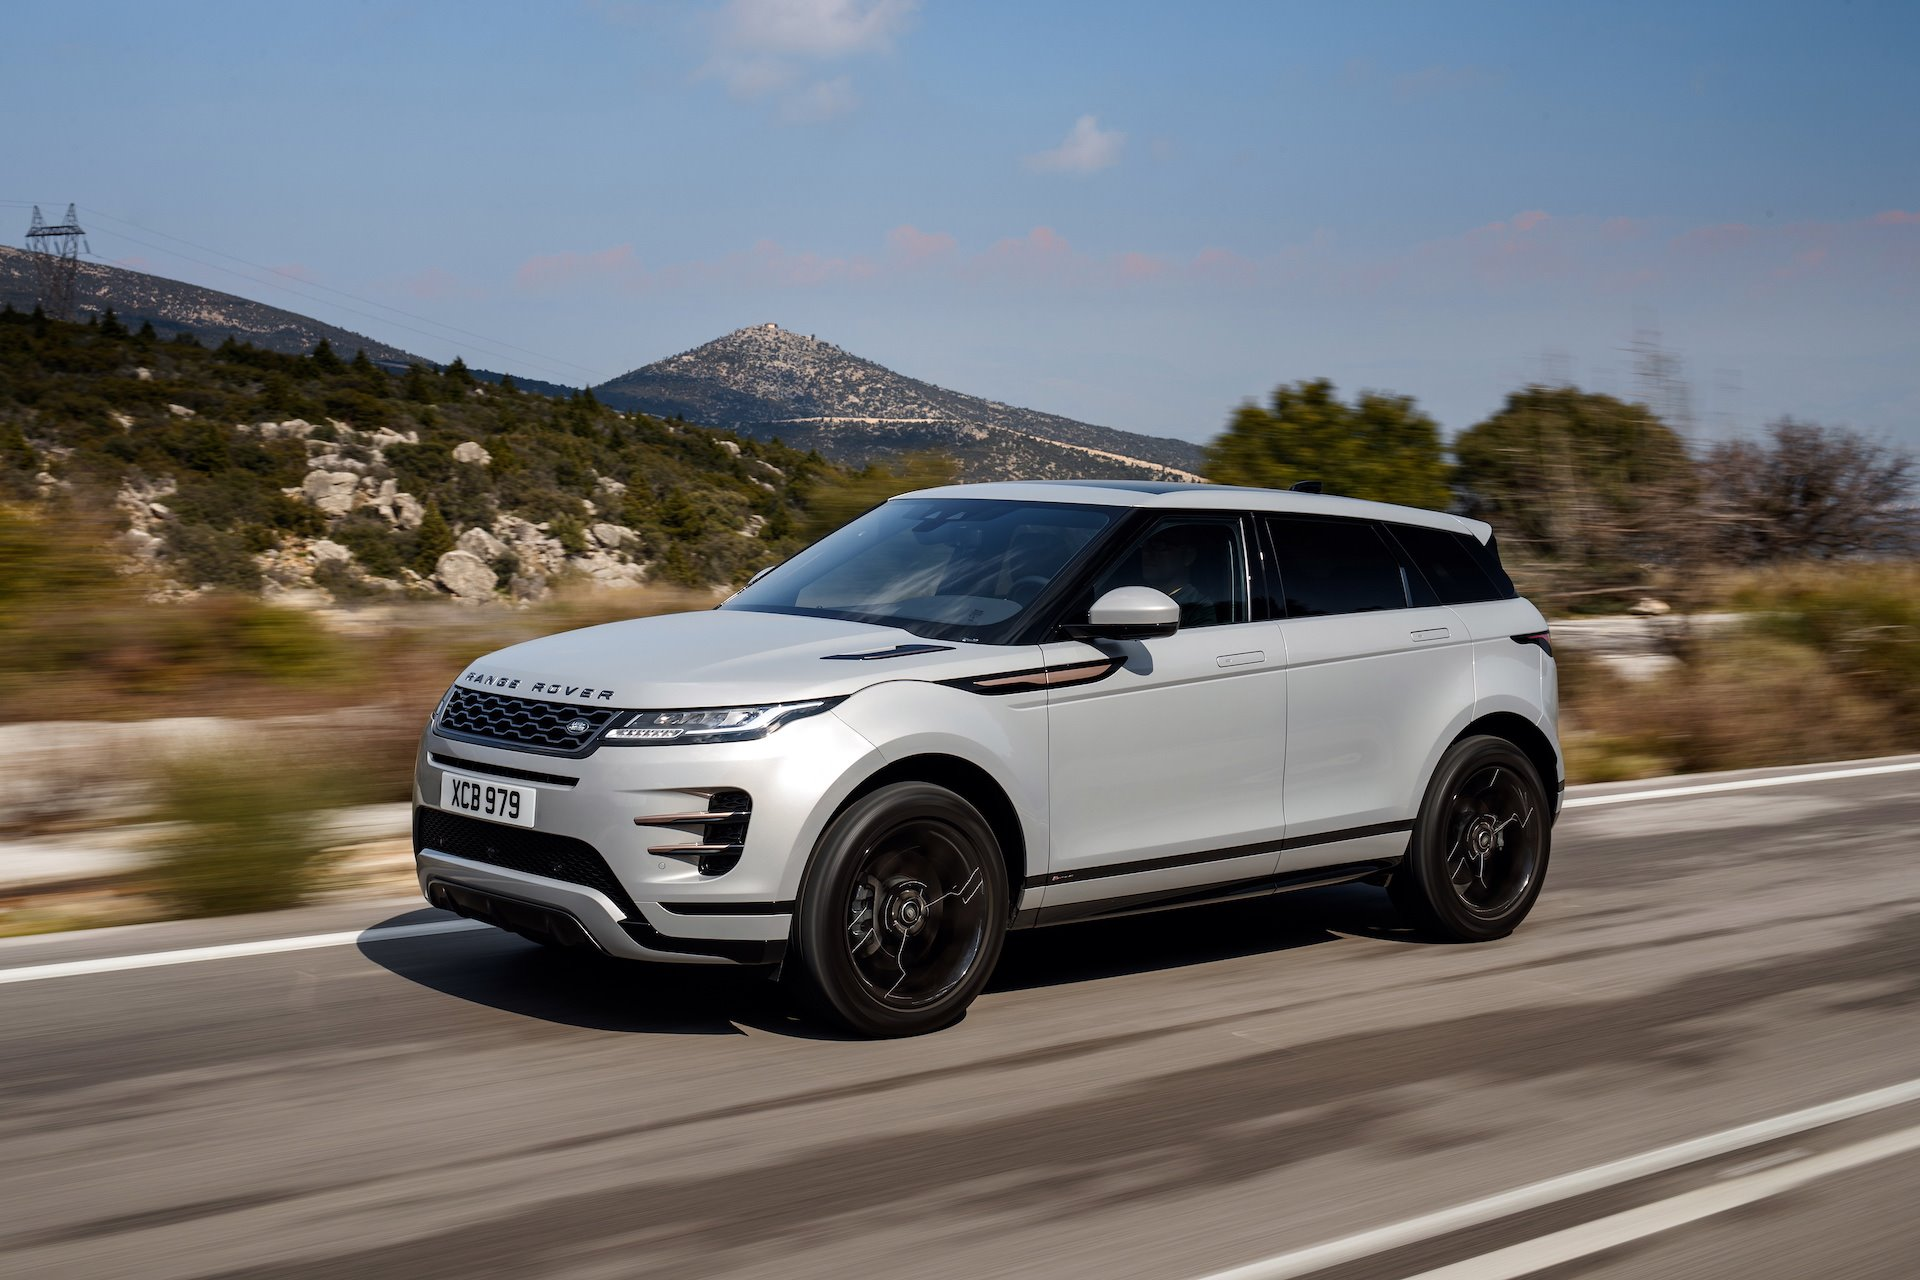 New 2020 Land Rover-Range Rover Evoque R-Dynamic HSE Range Rover Evoque R-Dynamic HSE for sale $55,800 at M and V Leasing in Brooklyn NY 11223 1